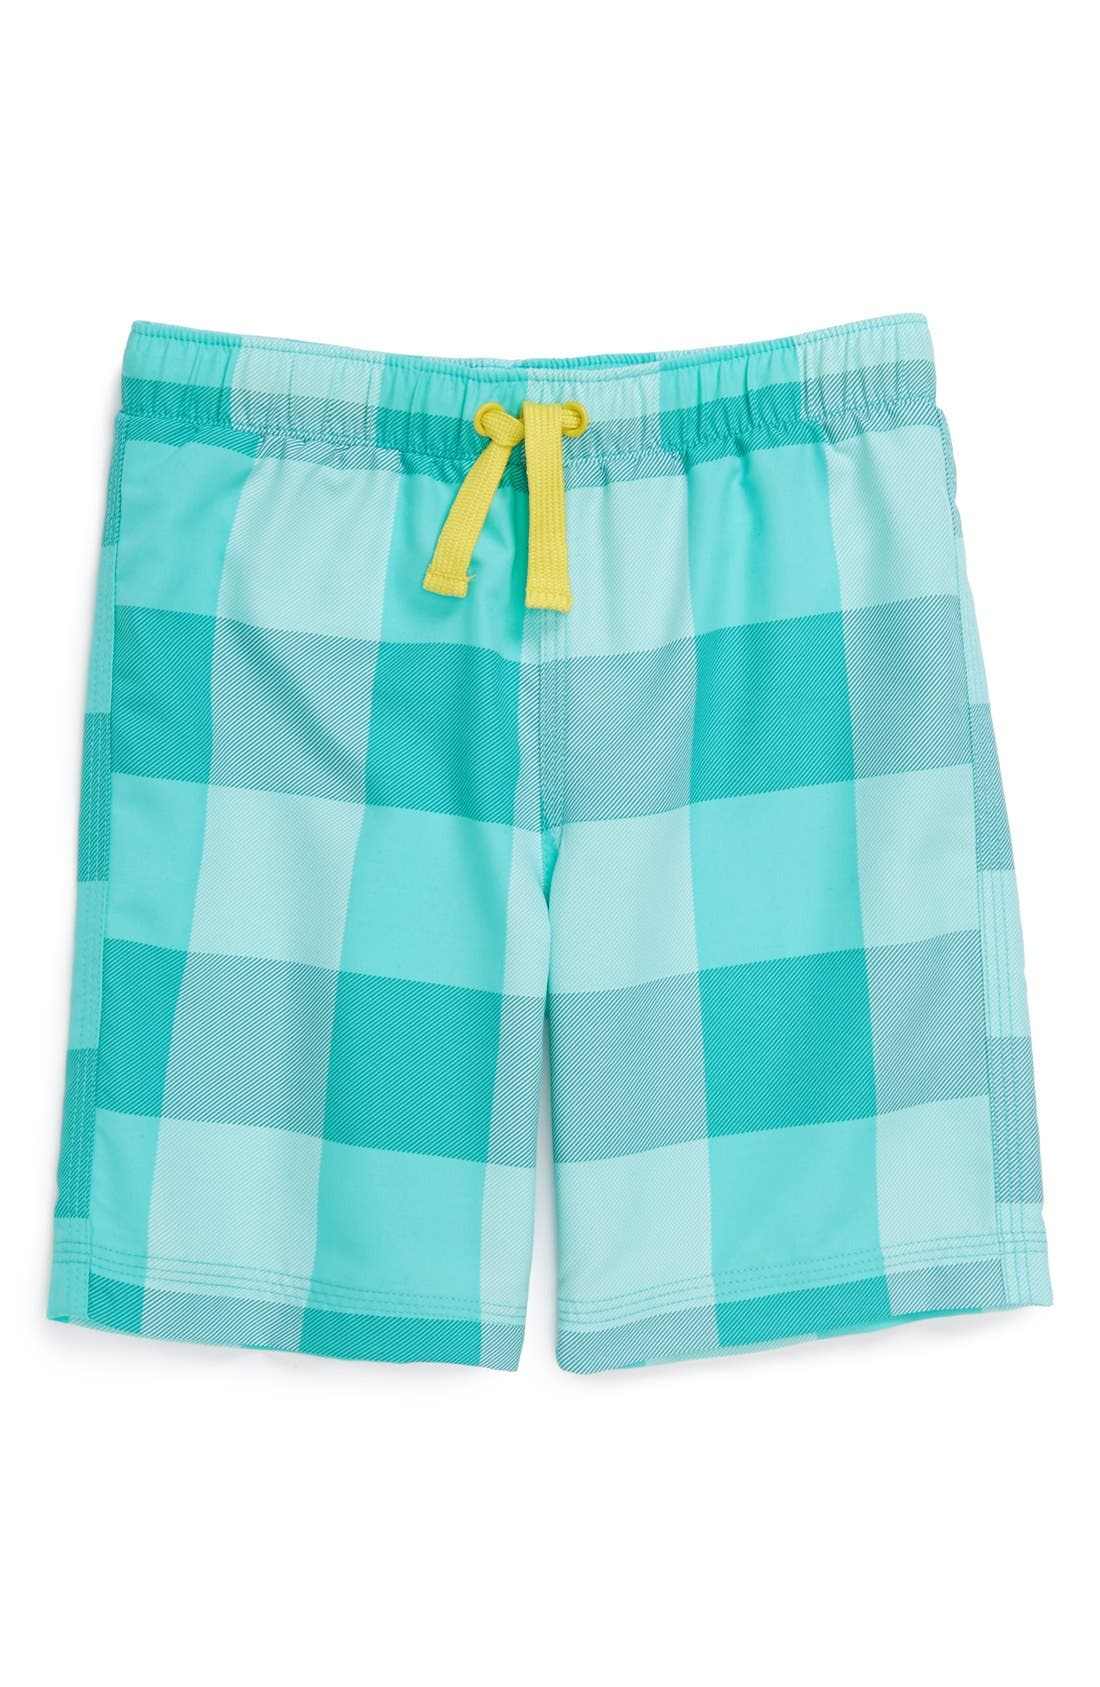 Alternate Image 1 Selected - Tucker + Tate 'Sand 'N My Trunks' Swim Trunks (Toddler Boys & Little Boys)